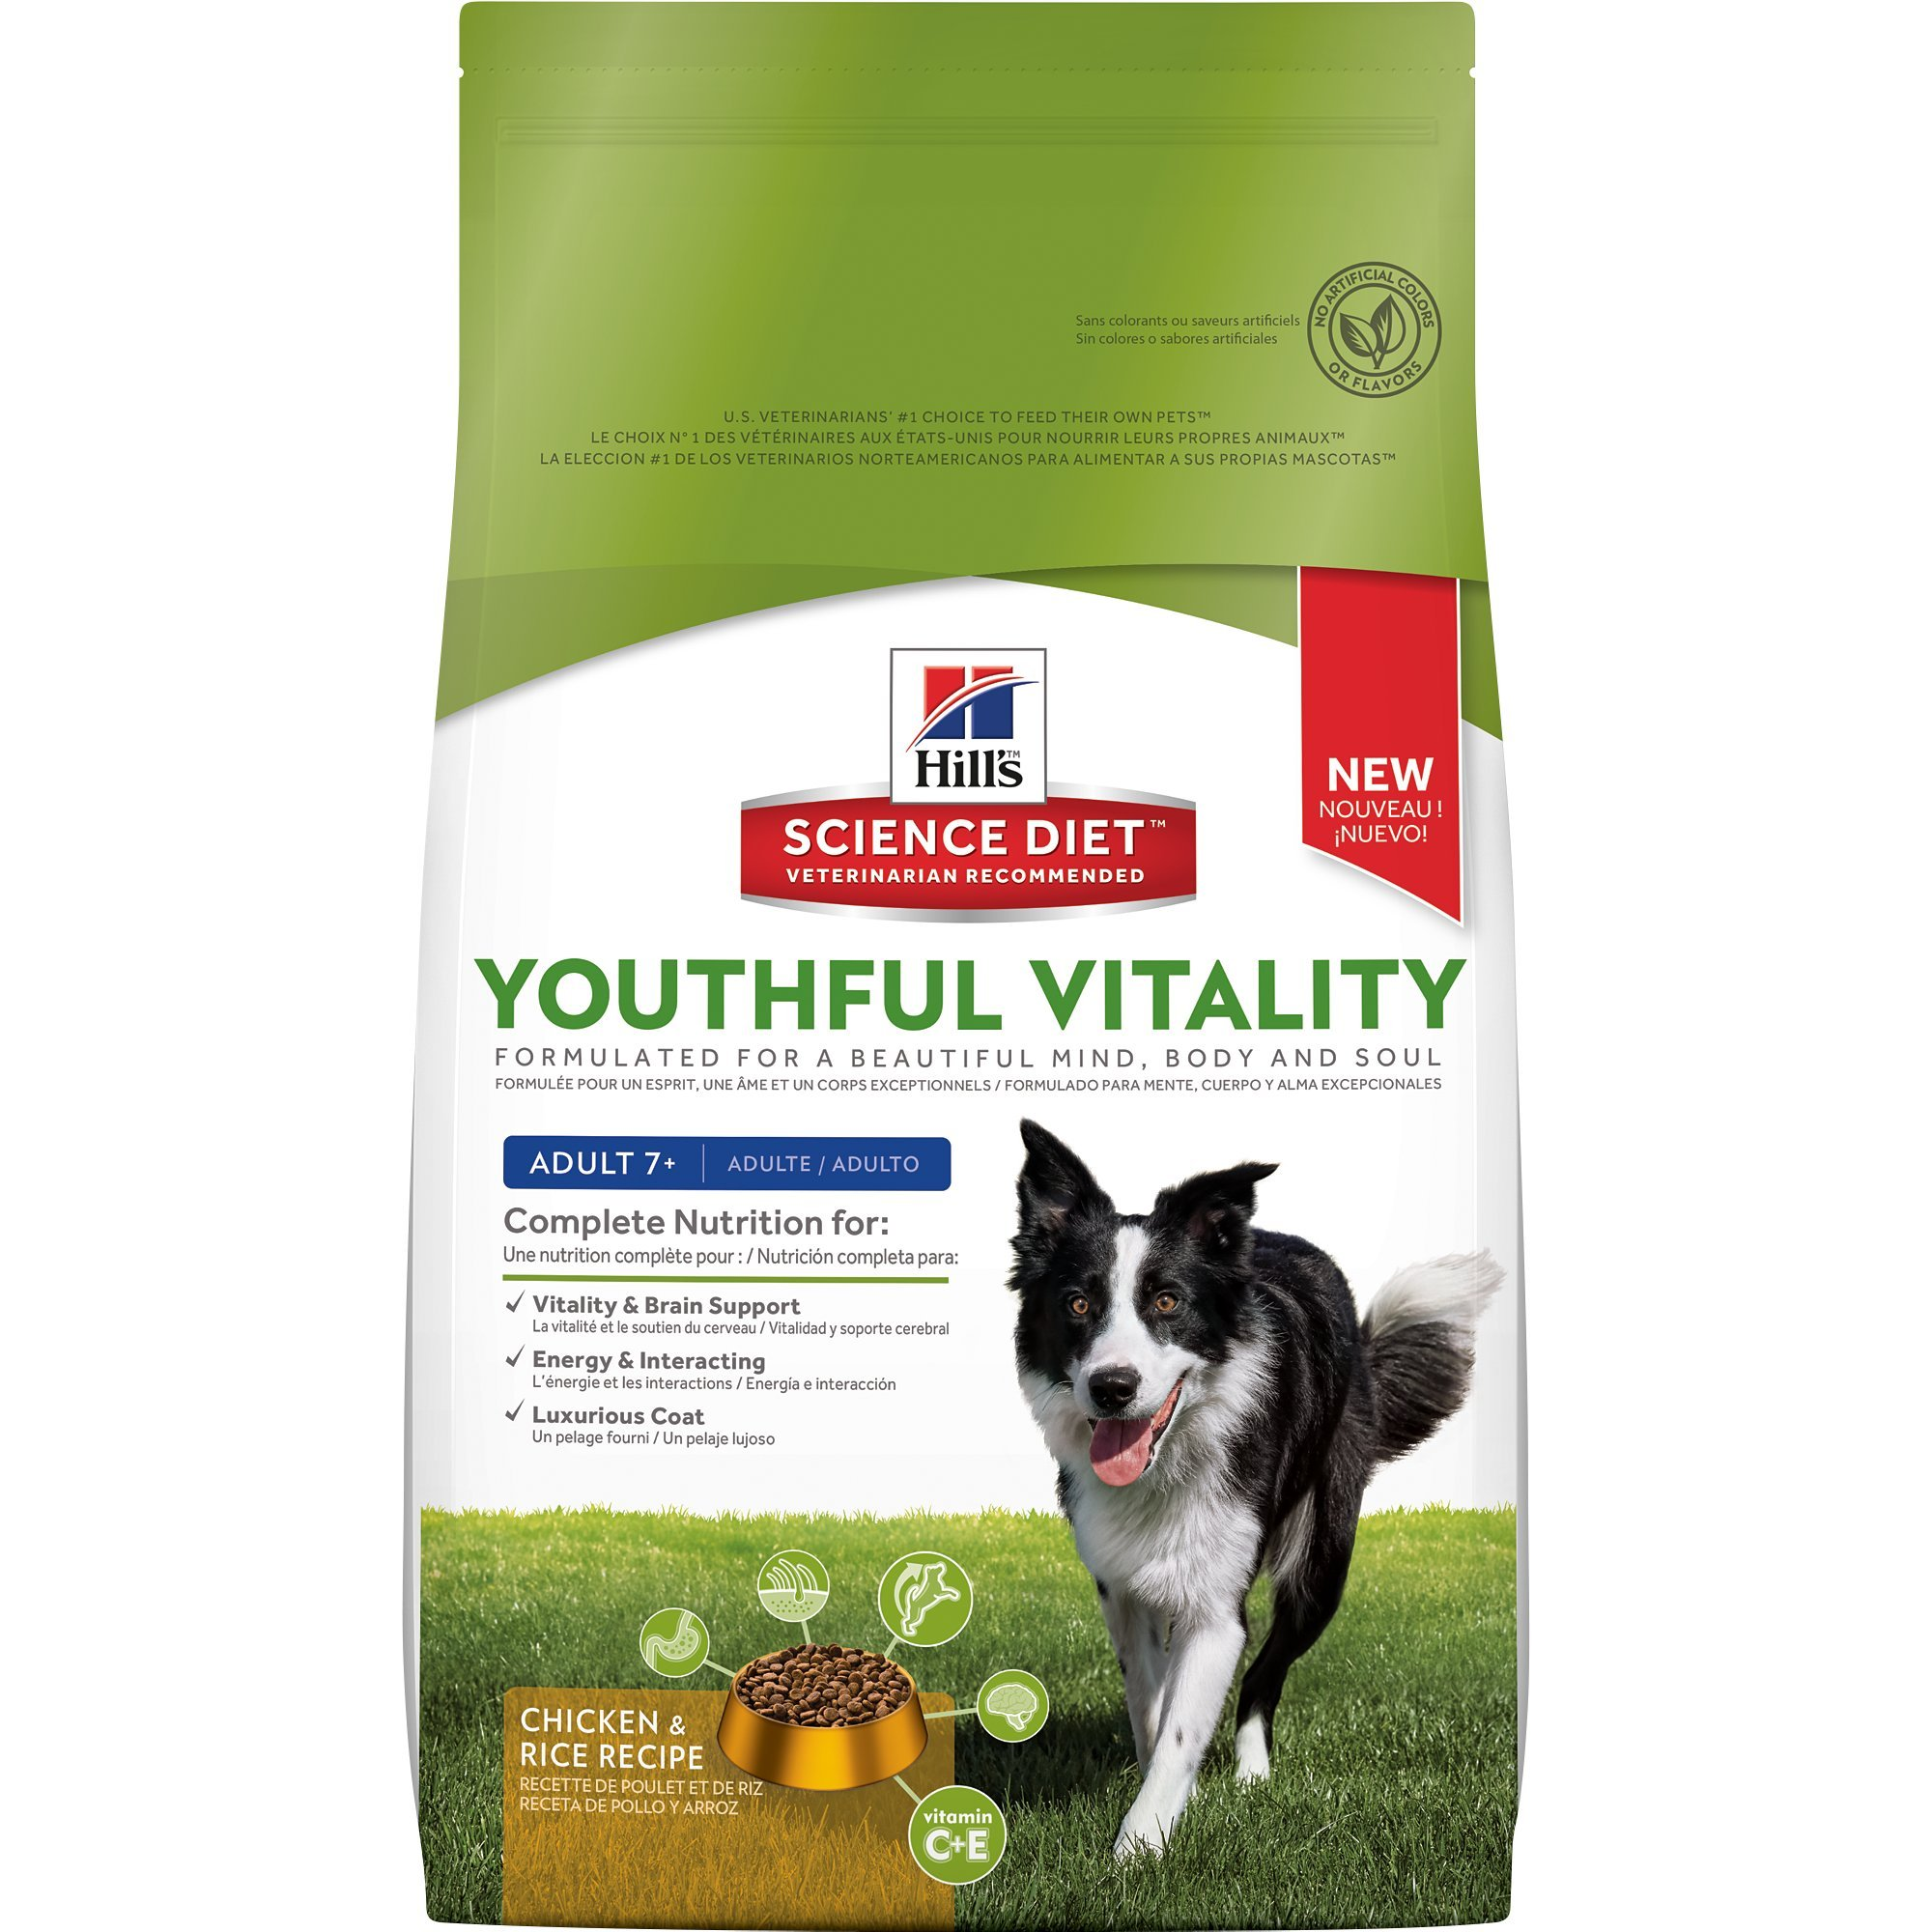 Senior Dog Food >> Details About Hill S Science Diet Senior Dog Food Adult 7 Youthful Vitality Chicken Rice